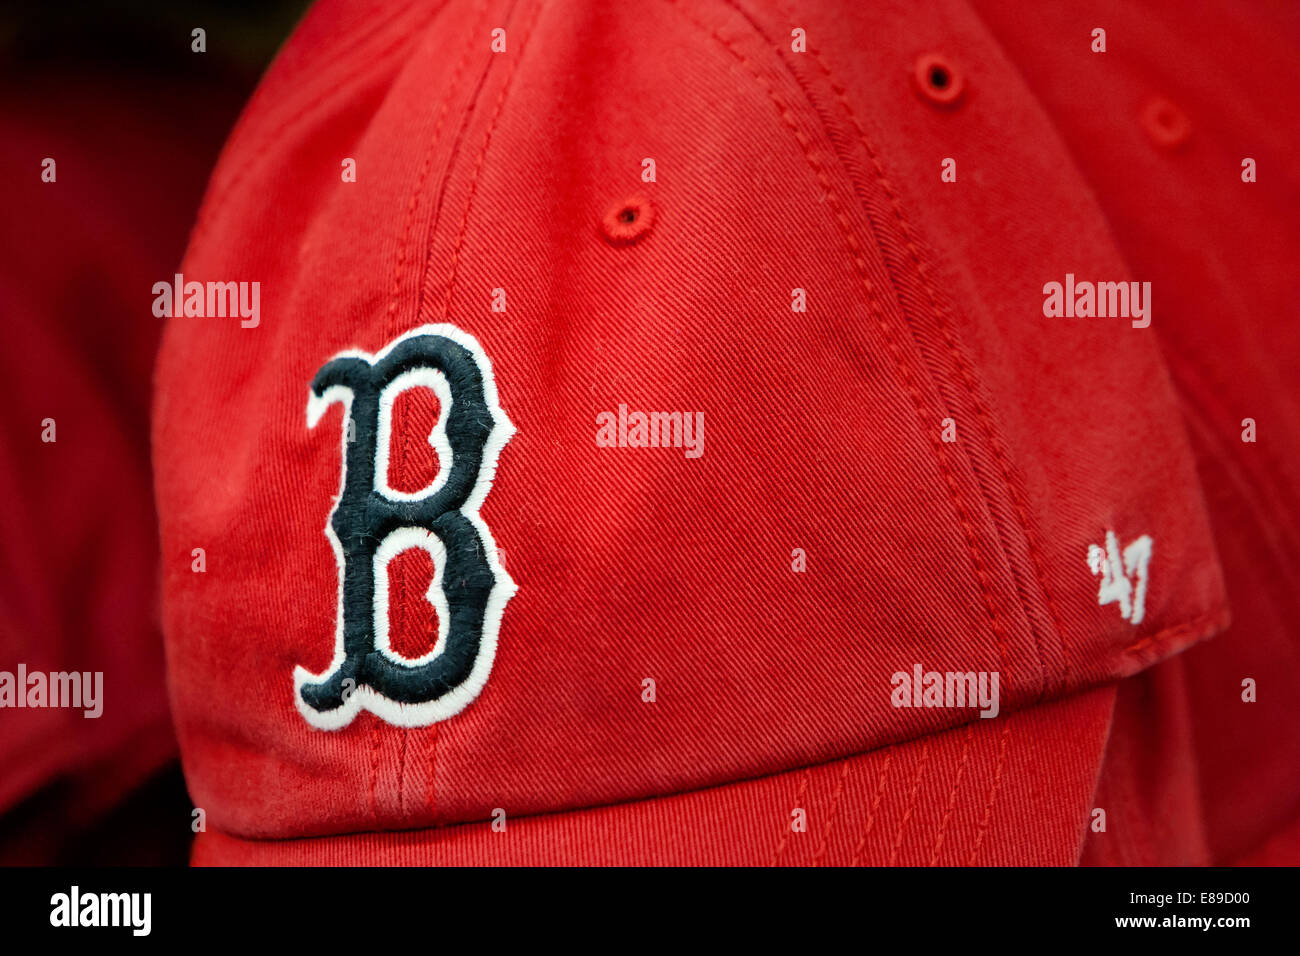 932a3f7fff2 Boston Red Sox Stock Photos   Boston Red Sox Stock Images - Alamy